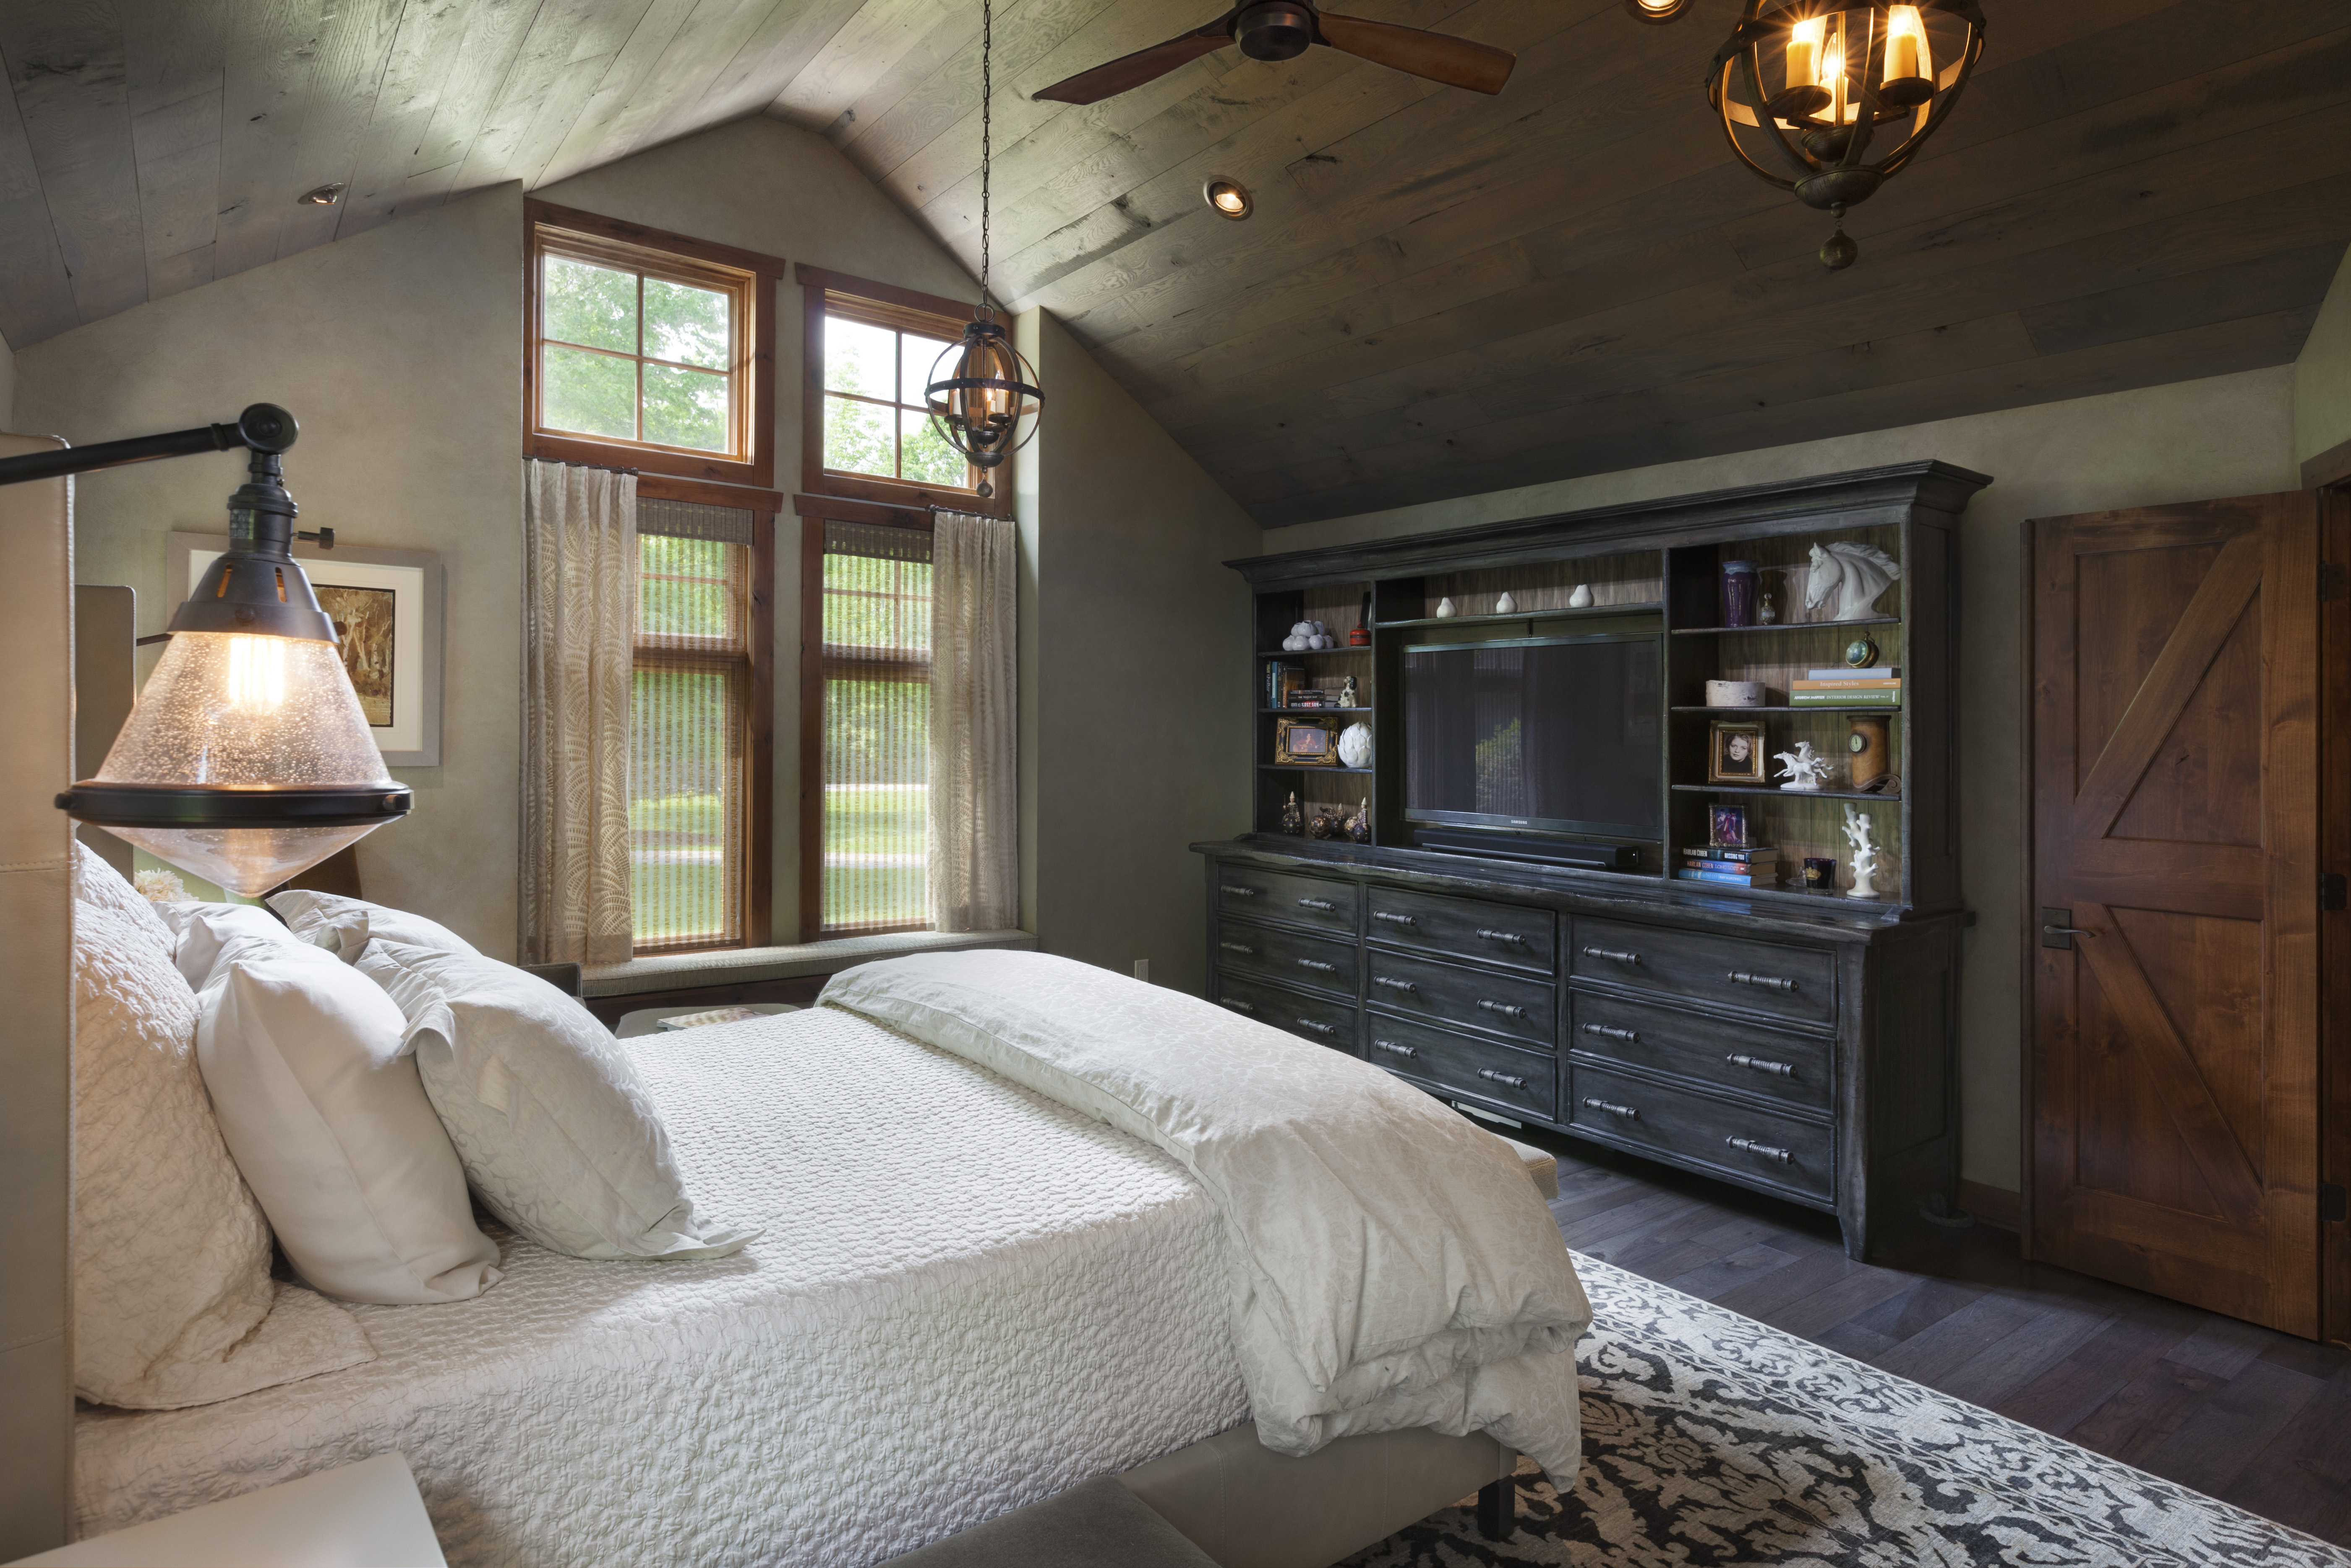 This Master Suite Remodel Was Inspired By Our Clientu0027s Love Of Refined  Rustic Design Elements. Aged Wood Tongue And Groove Clad The Ceiling And  Barn Doors, ...